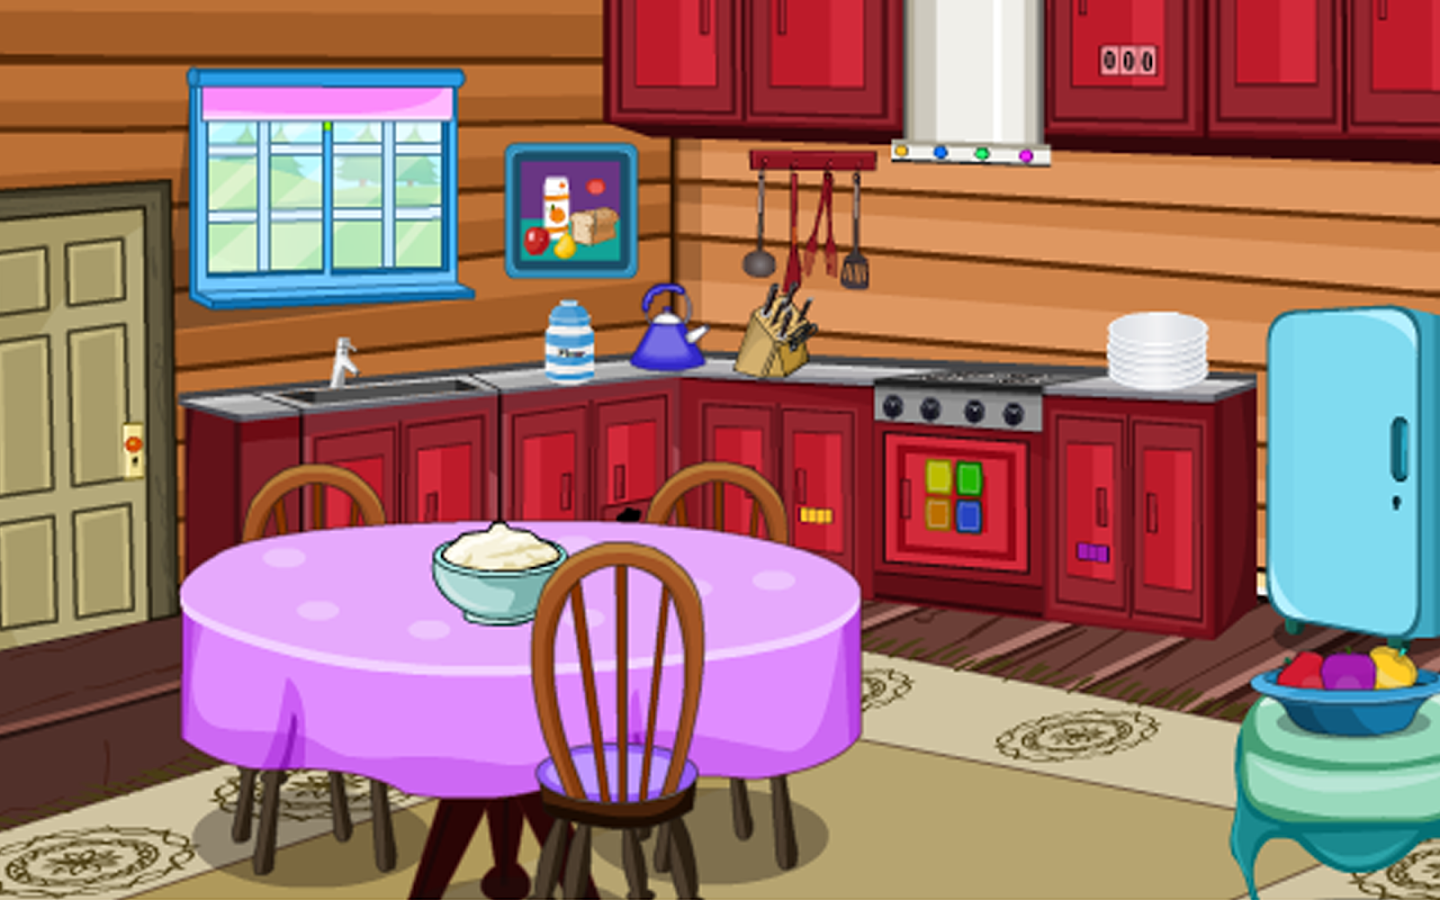 Escape Puzzle Dining Room Android Apps on Google Play : SUSbW1f4IoXqhy9wxSMJM762k6uuE45 lUDXqZh V3HJrFrsfvJW0 8dOHCFU72bGgh900 from play.google.com size 1440 x 900 png 715kB